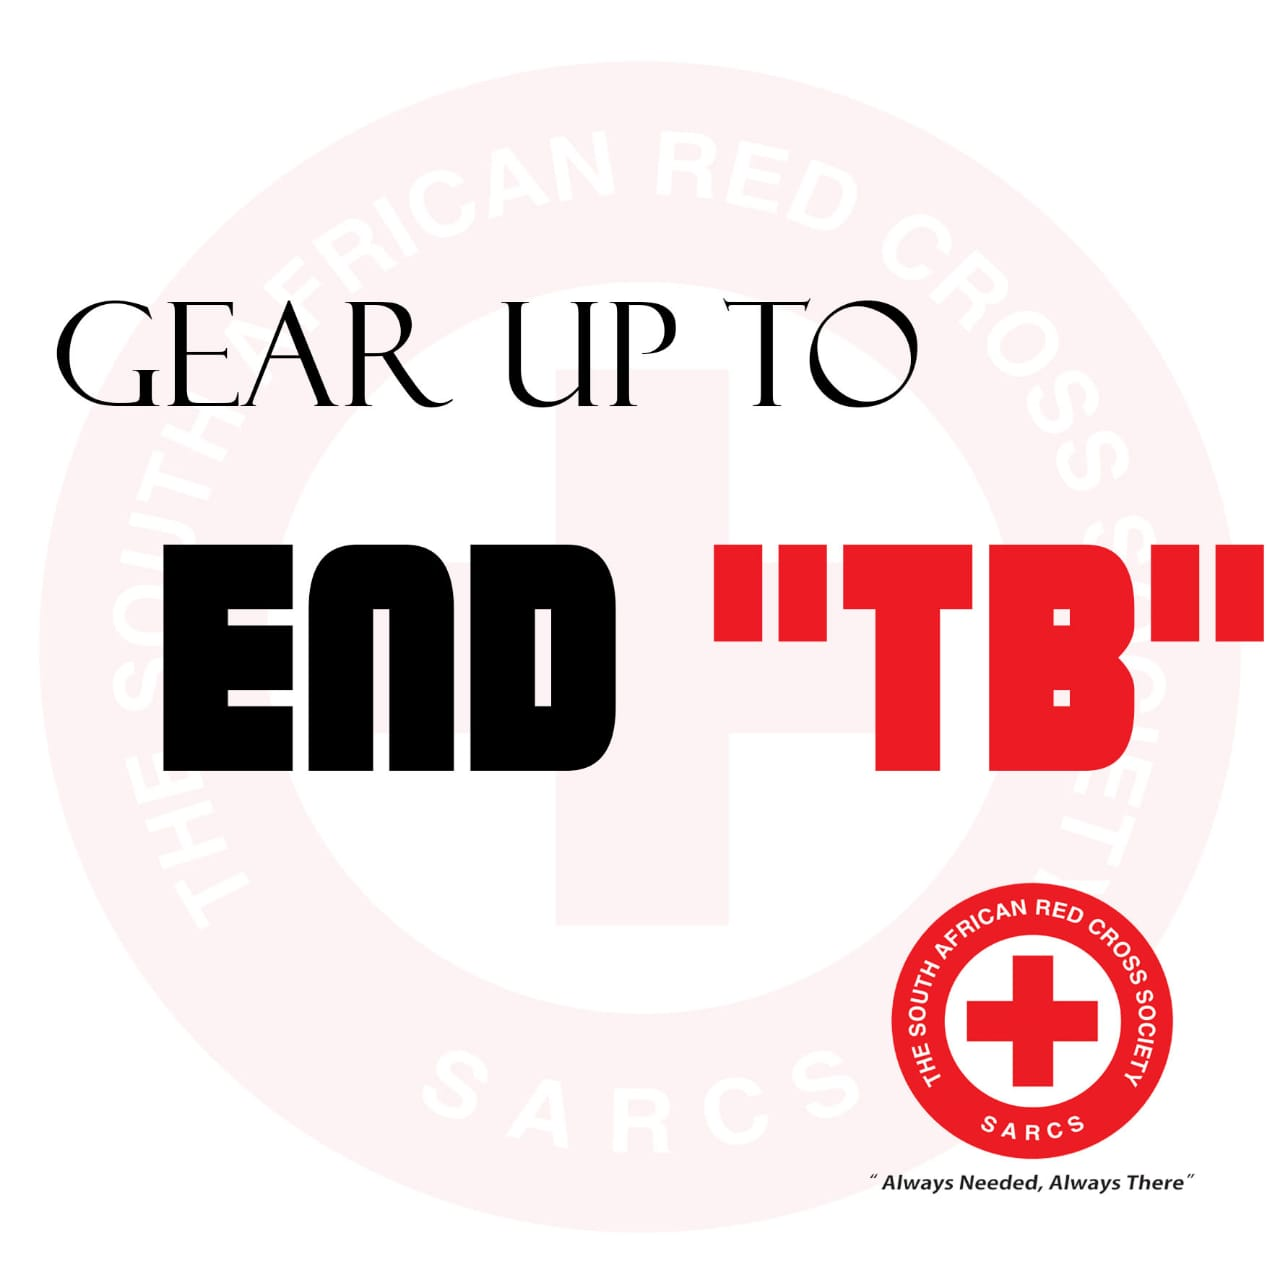 Advancing SARCS role to the End TB/HIV strategy